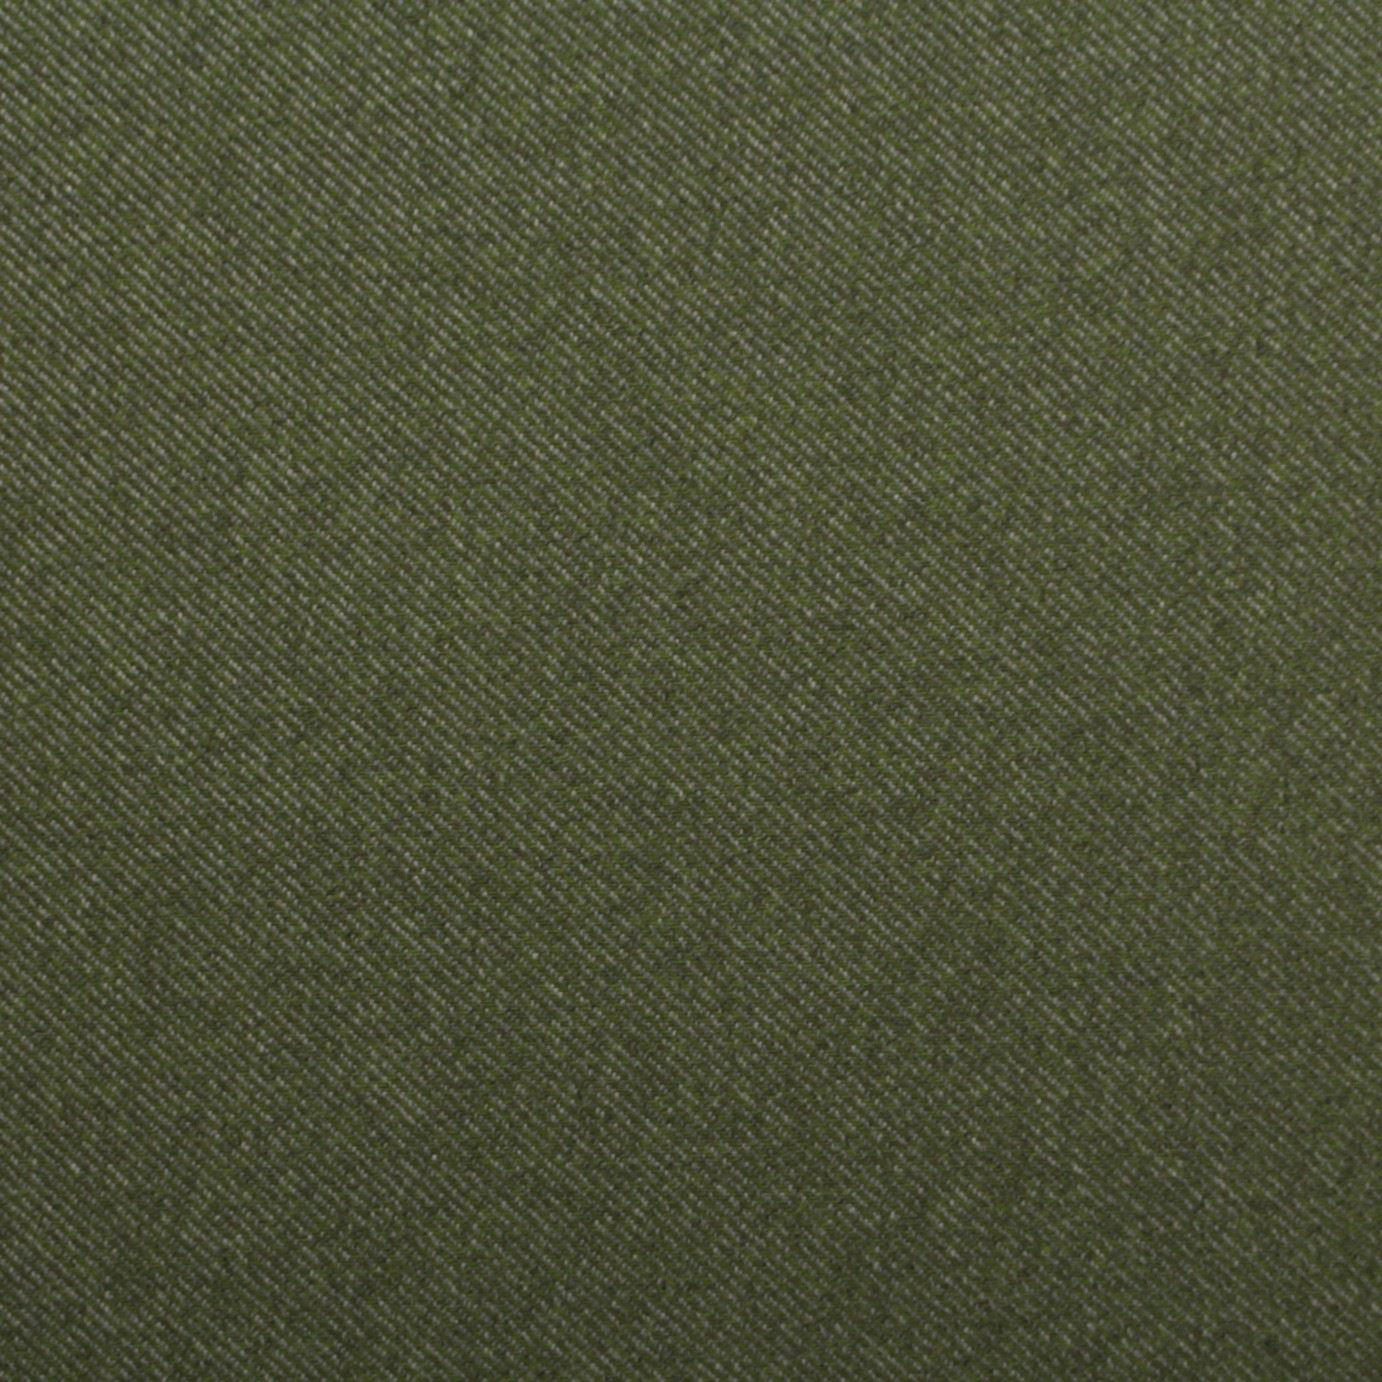 Traditional Twill Weave Soft Plain Furnishing Cotton Faux Wool